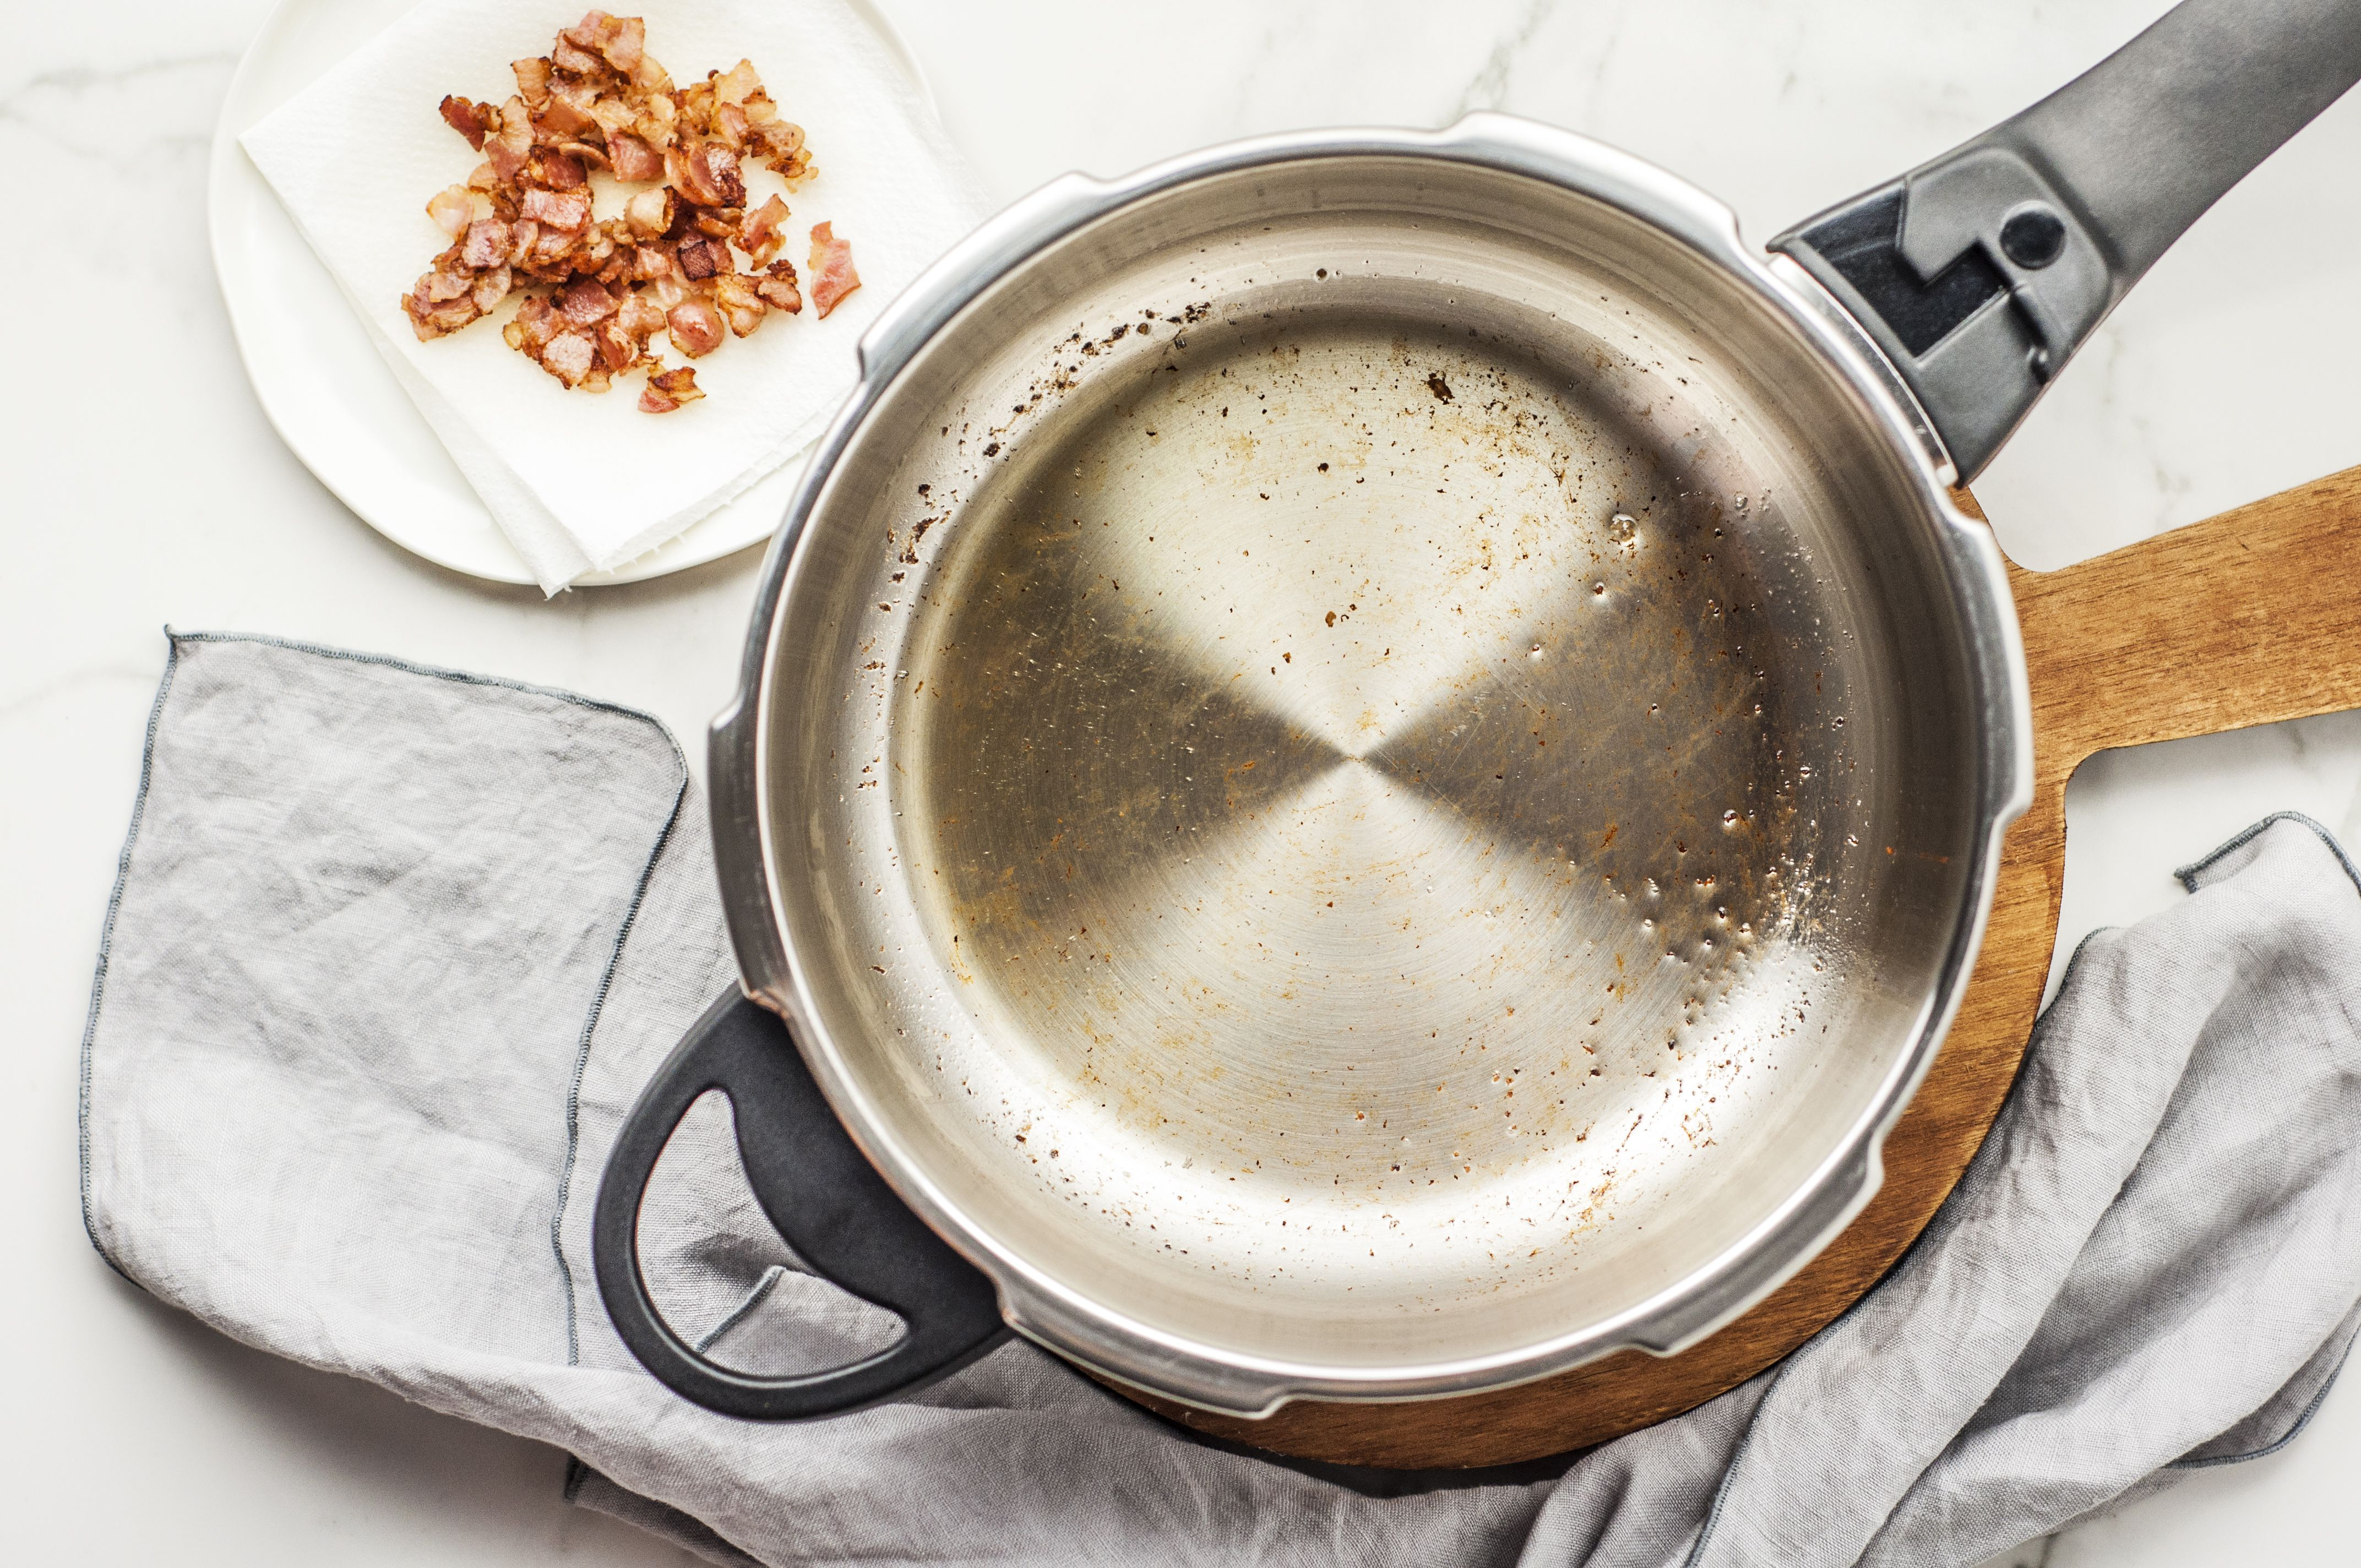 Heat the pressure cooker and add the shortening and bacon